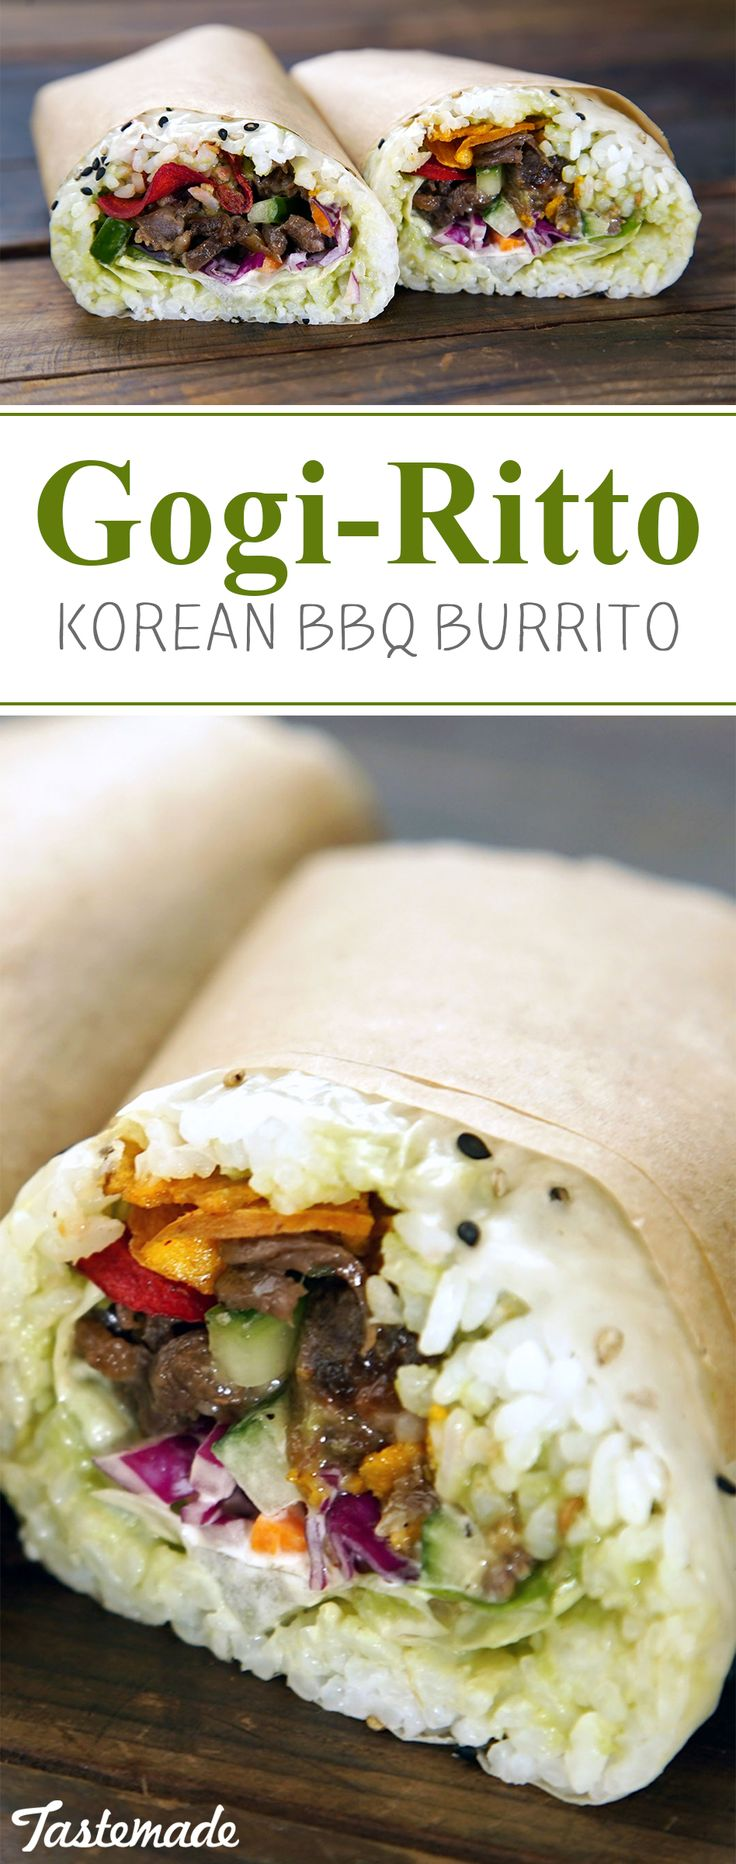 What happens when you combine sushi, Korean BBQ and a burrito? Here's a hint, it's magical.